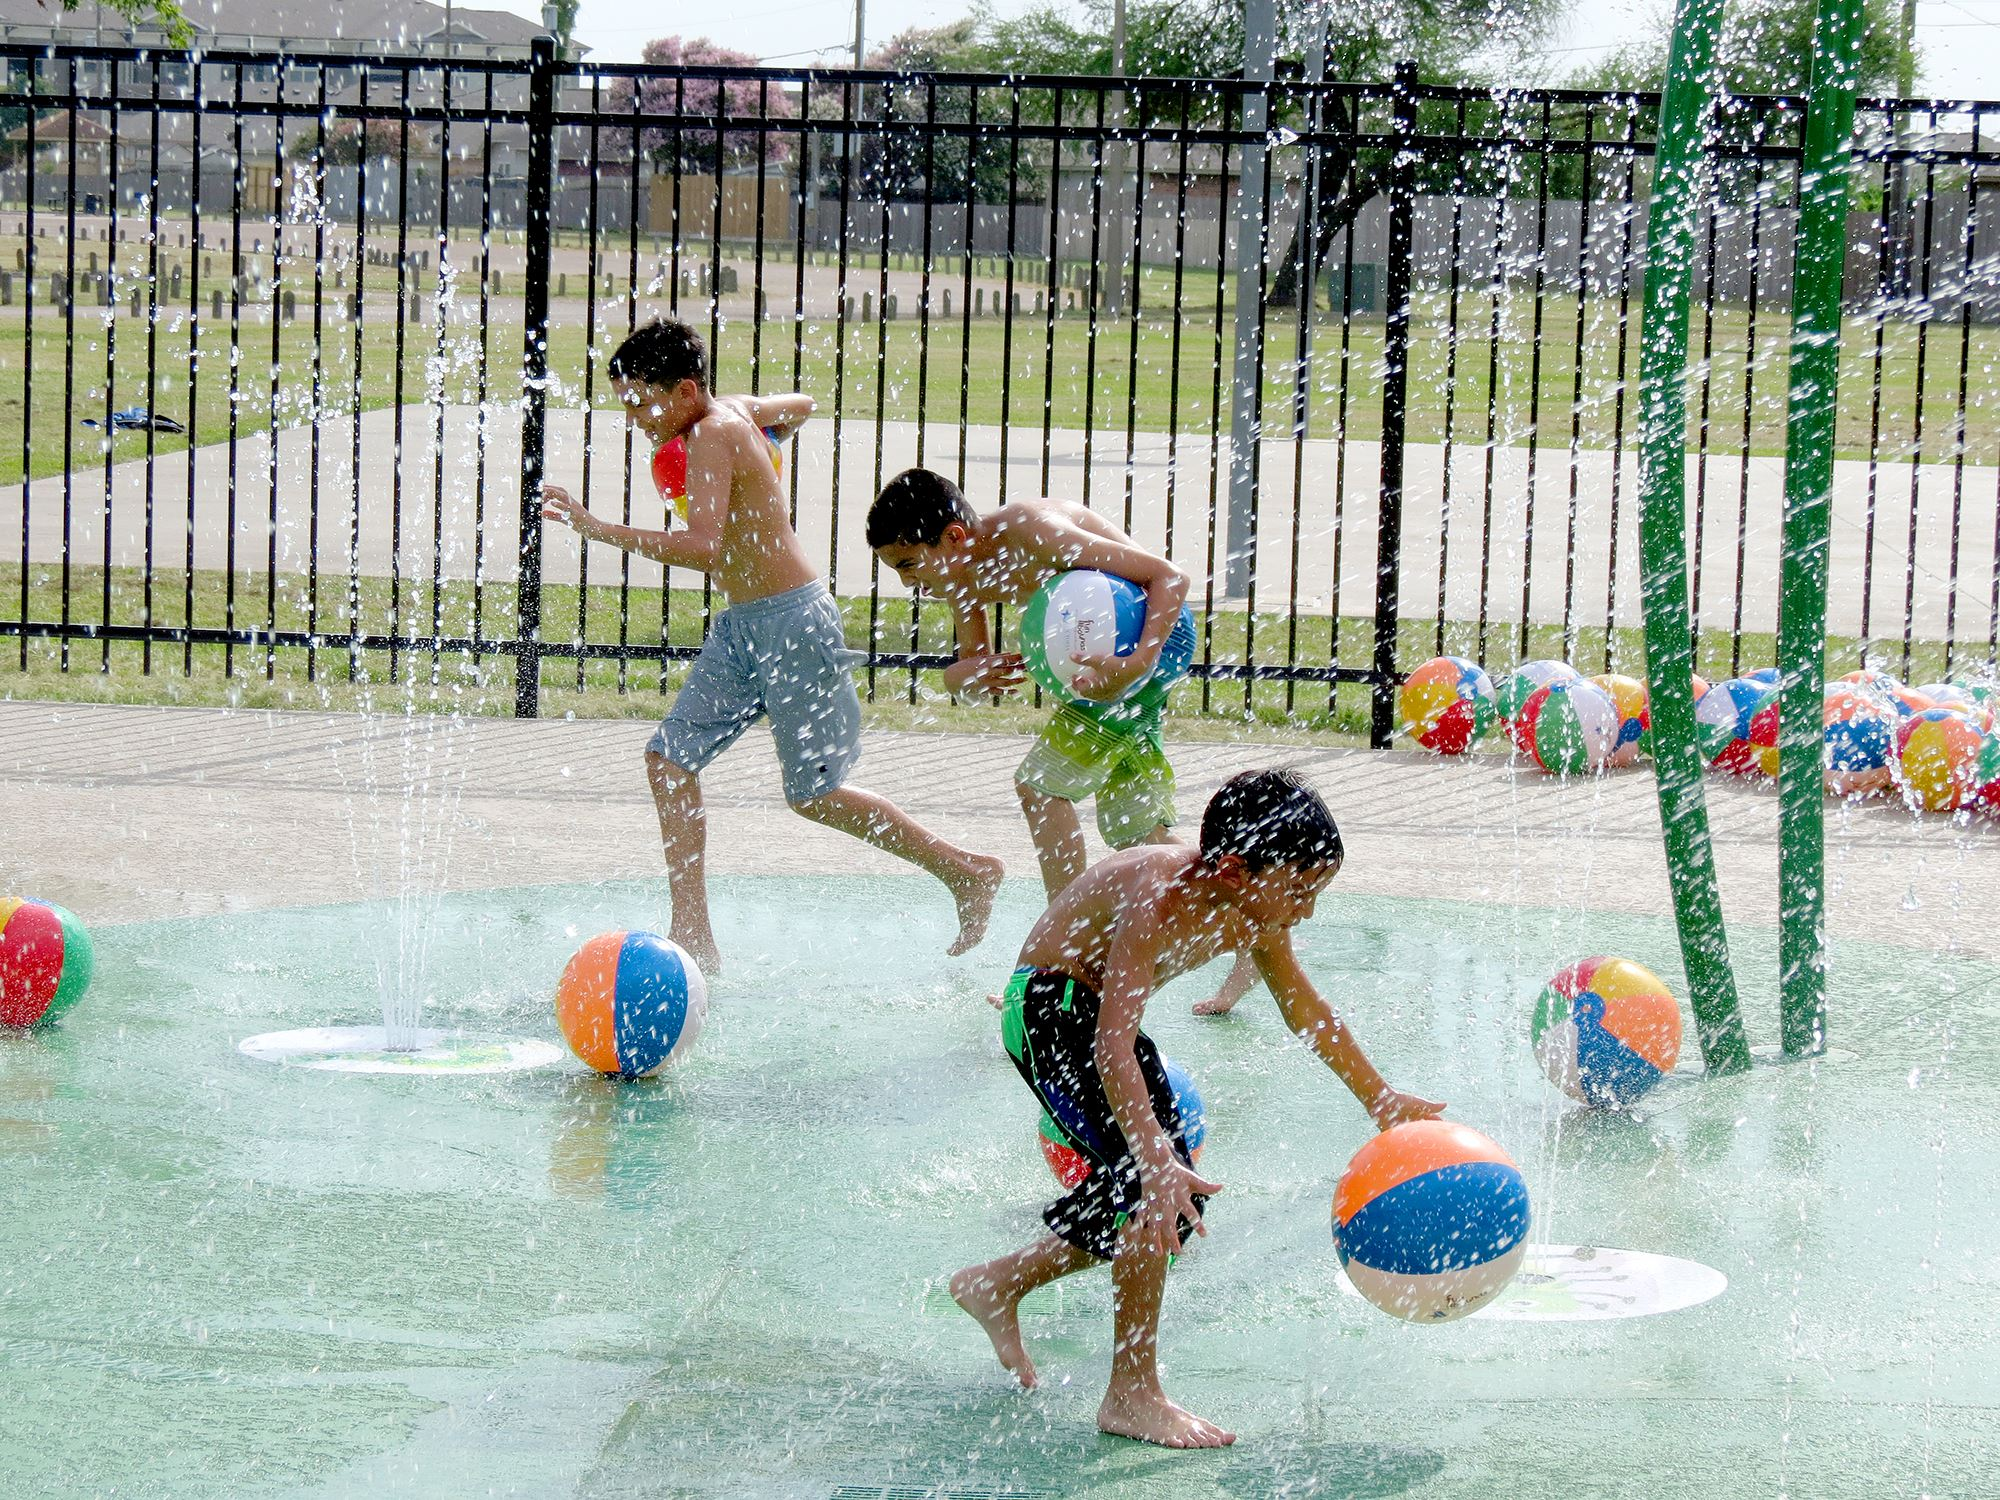 Children play at the Ethel Lee Tracy Park Splash Pad during the facility's 2018 grand opening.